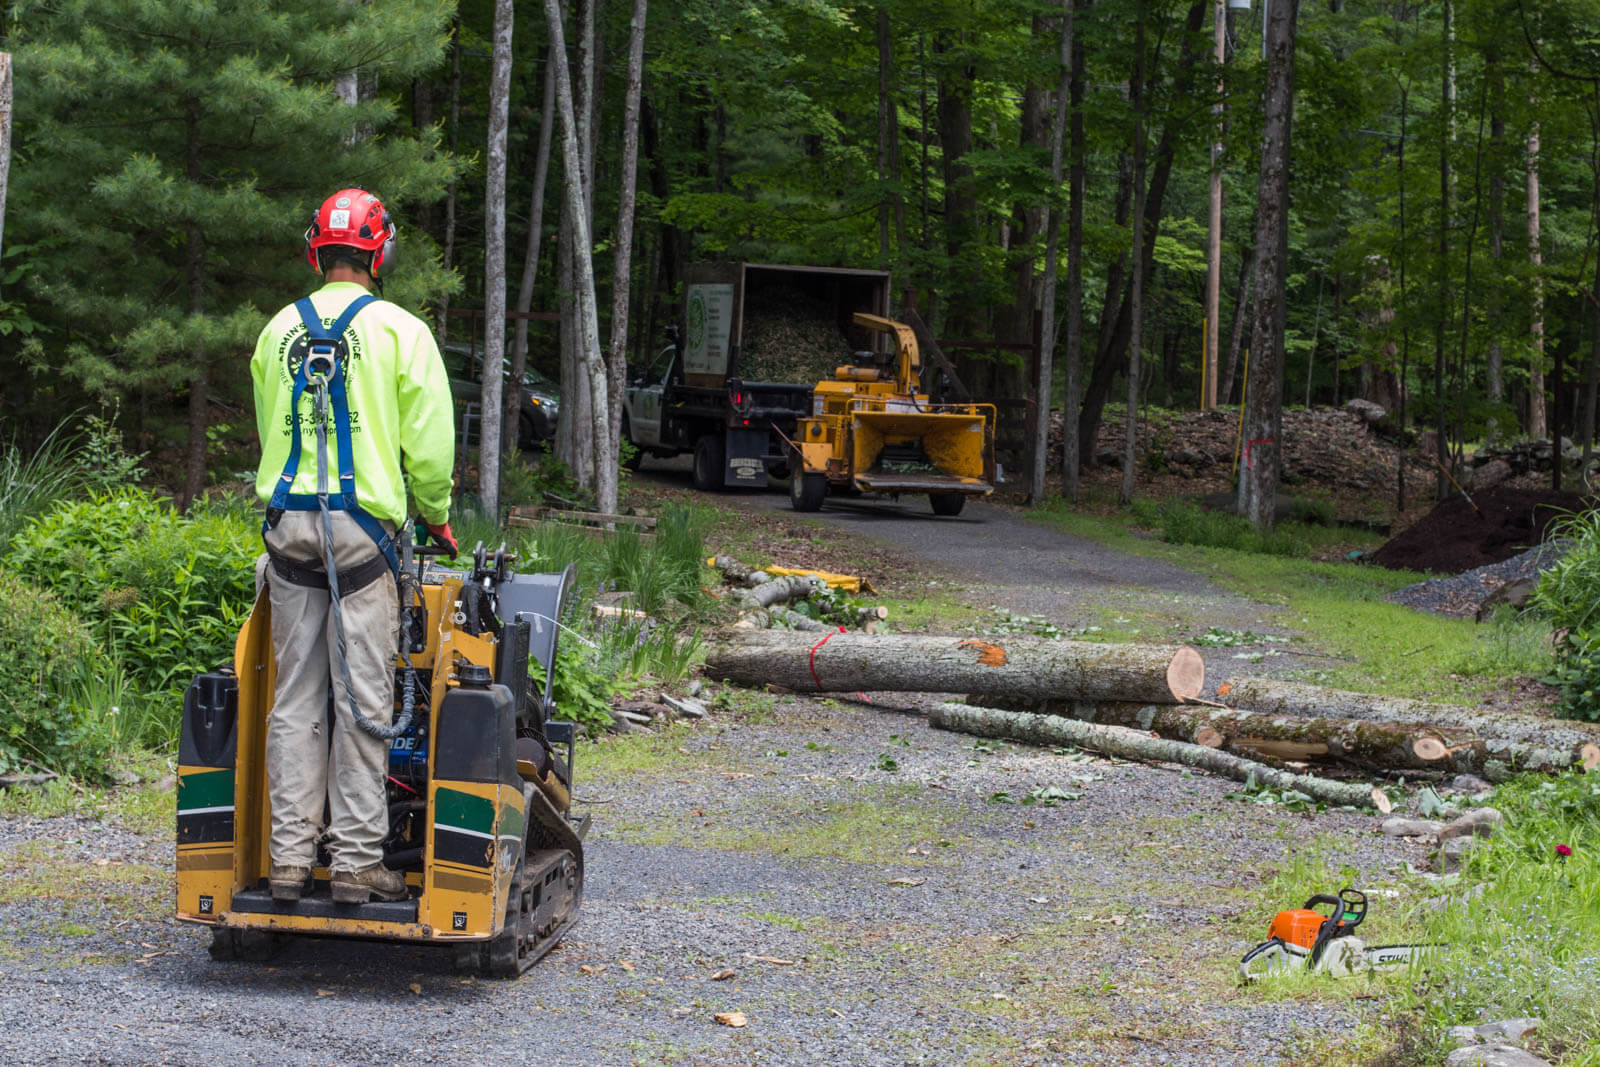 Emergency Tree Removal-San Marcos CA Tree Trimming and Stump Grinding Services-We Offer Tree Trimming Services, Tree Removal, Tree Pruning, Tree Cutting, Residential and Commercial Tree Trimming Services, Storm Damage, Emergency Tree Removal, Land Clearing, Tree Companies, Tree Care Service, Stump Grinding, and we're the Best Tree Trimming Company Near You Guaranteed!